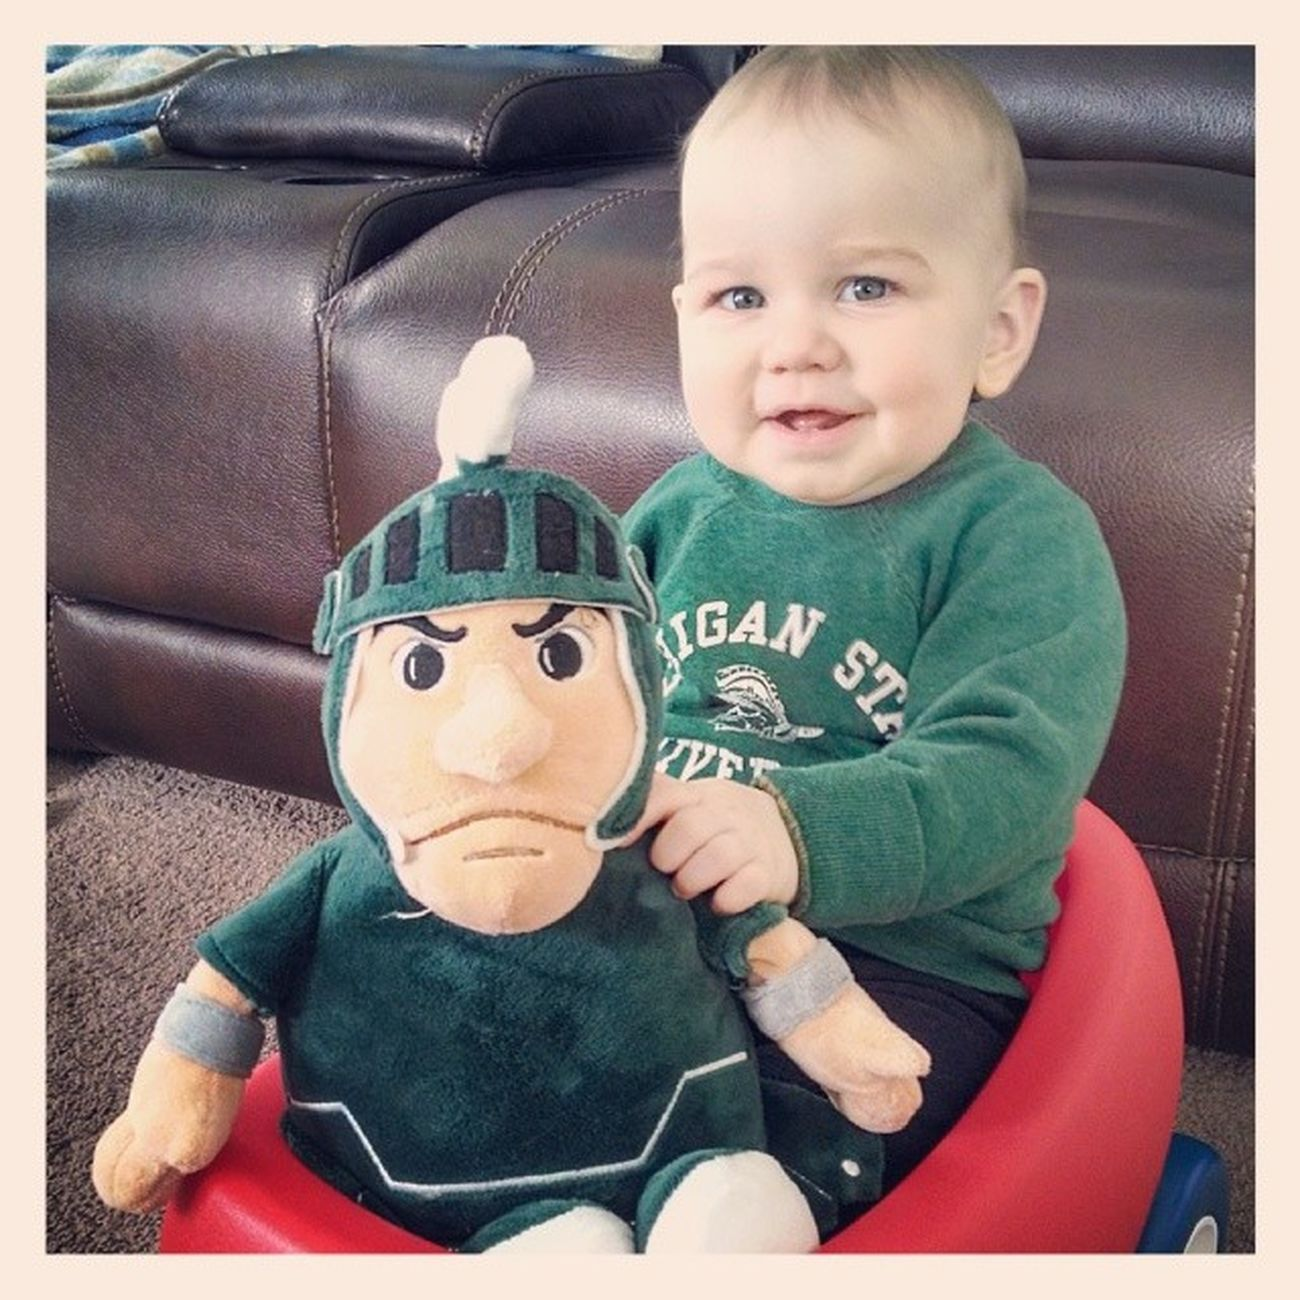 """Leland says """"Go State! Beat those Wolverines today! Me and Sparty will be cheering you on!"""" MSUvsUM"""